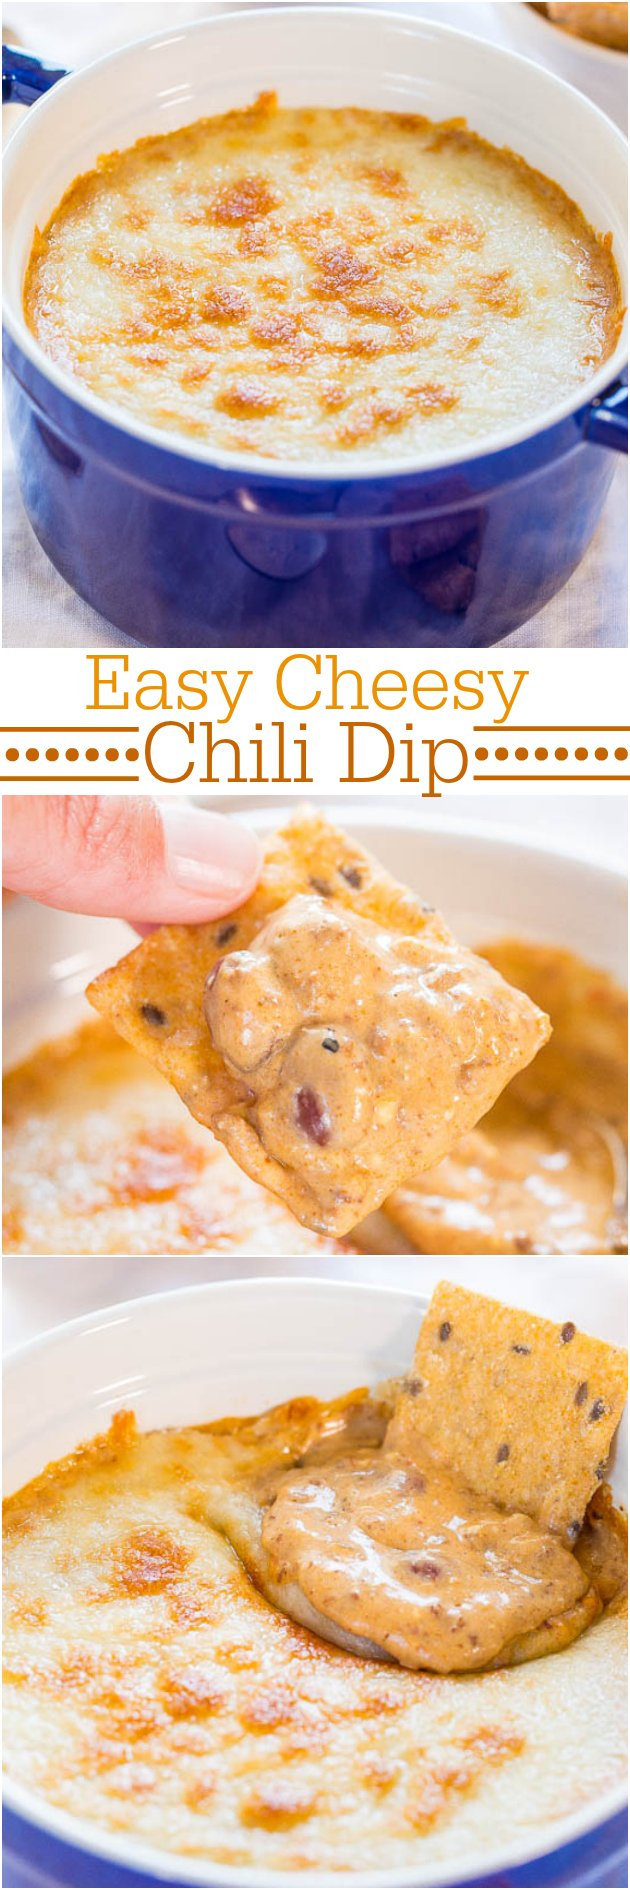 Easy Cheesy Chili Dip - Just a few ingredients and 5 mins is all you need for this super easy dip packed with flavor! And CHEESE! So good!!!